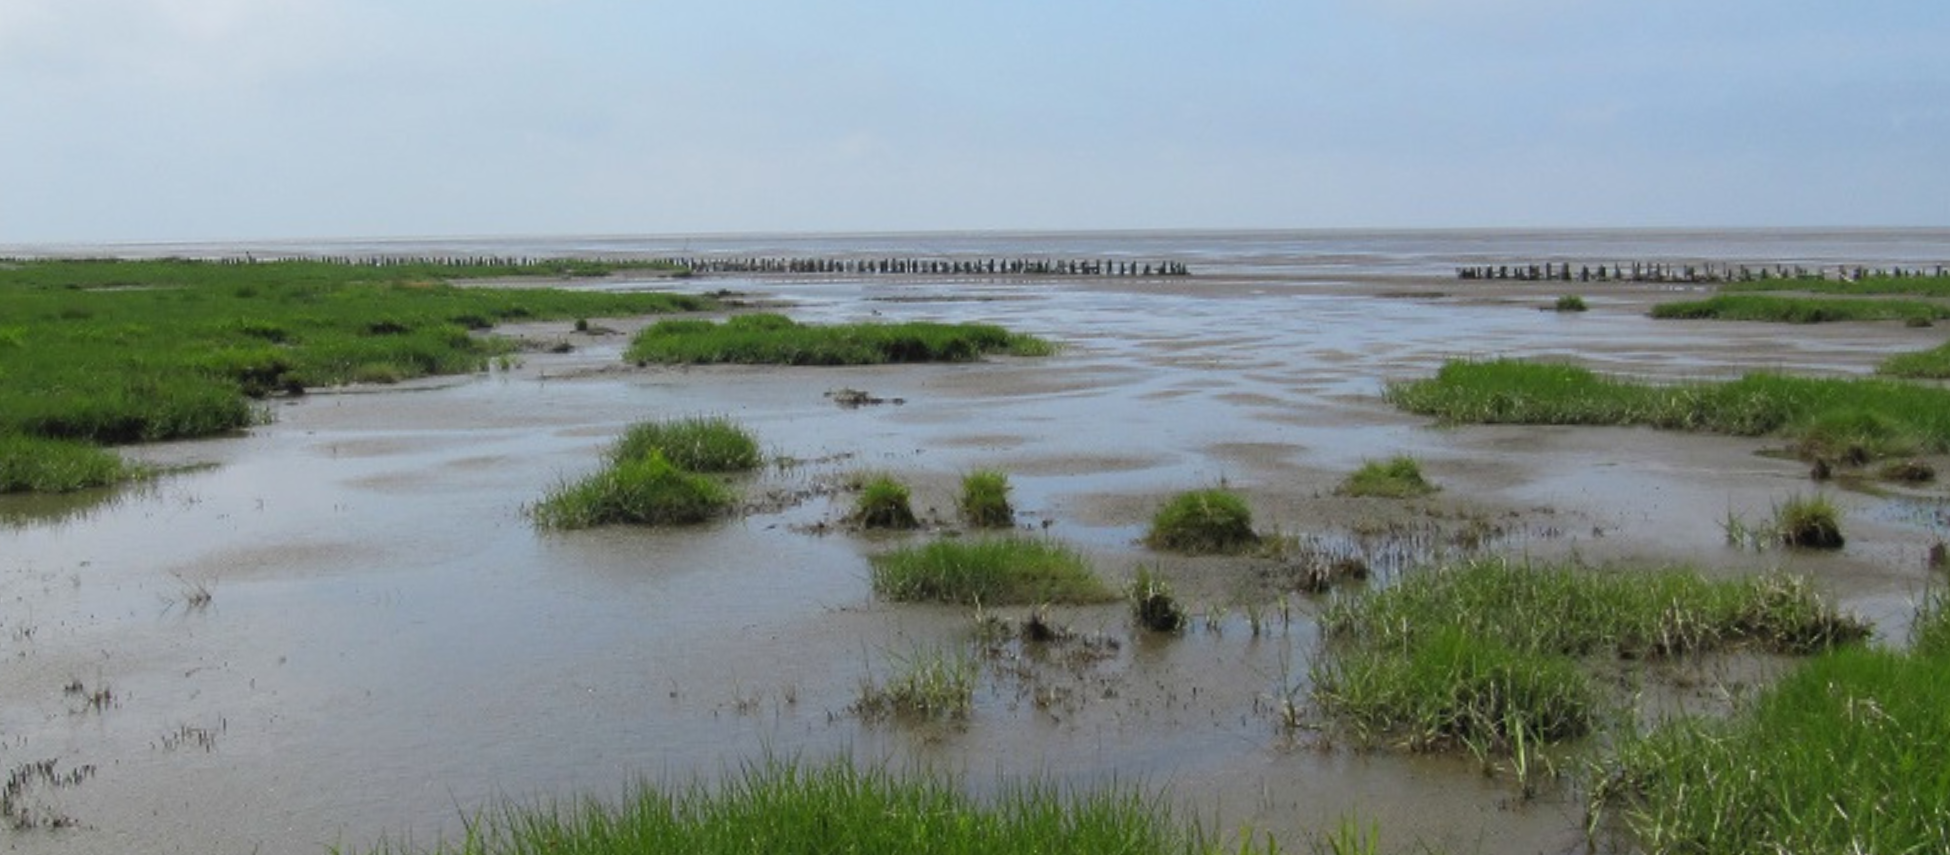 Interdisciplinary Postdoc Position in Salt Marsh Ecology and Ecosystem Services